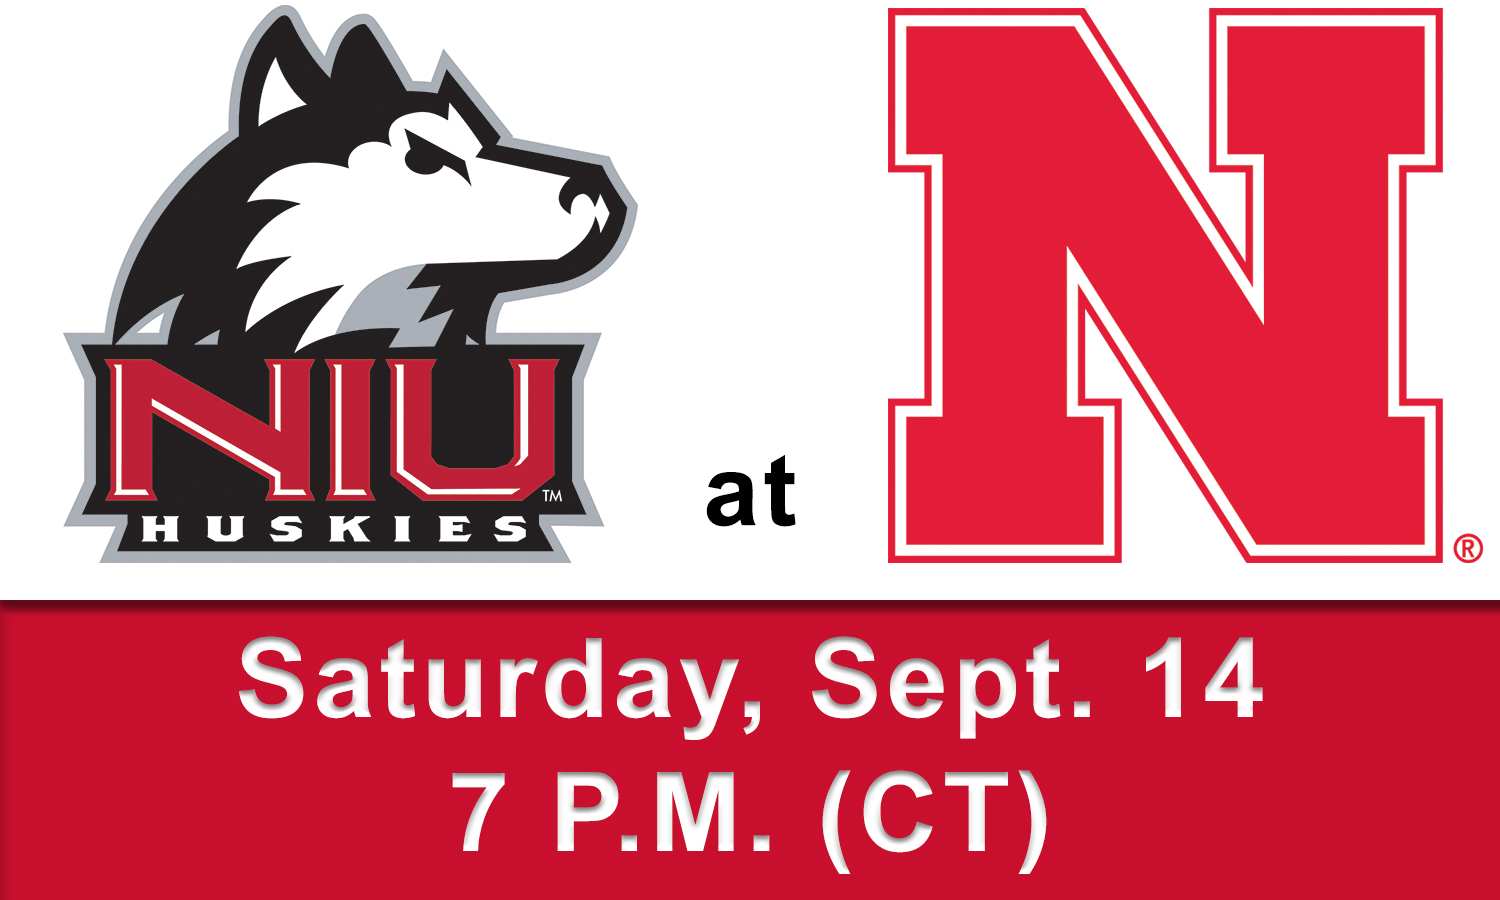 niu-at-neb